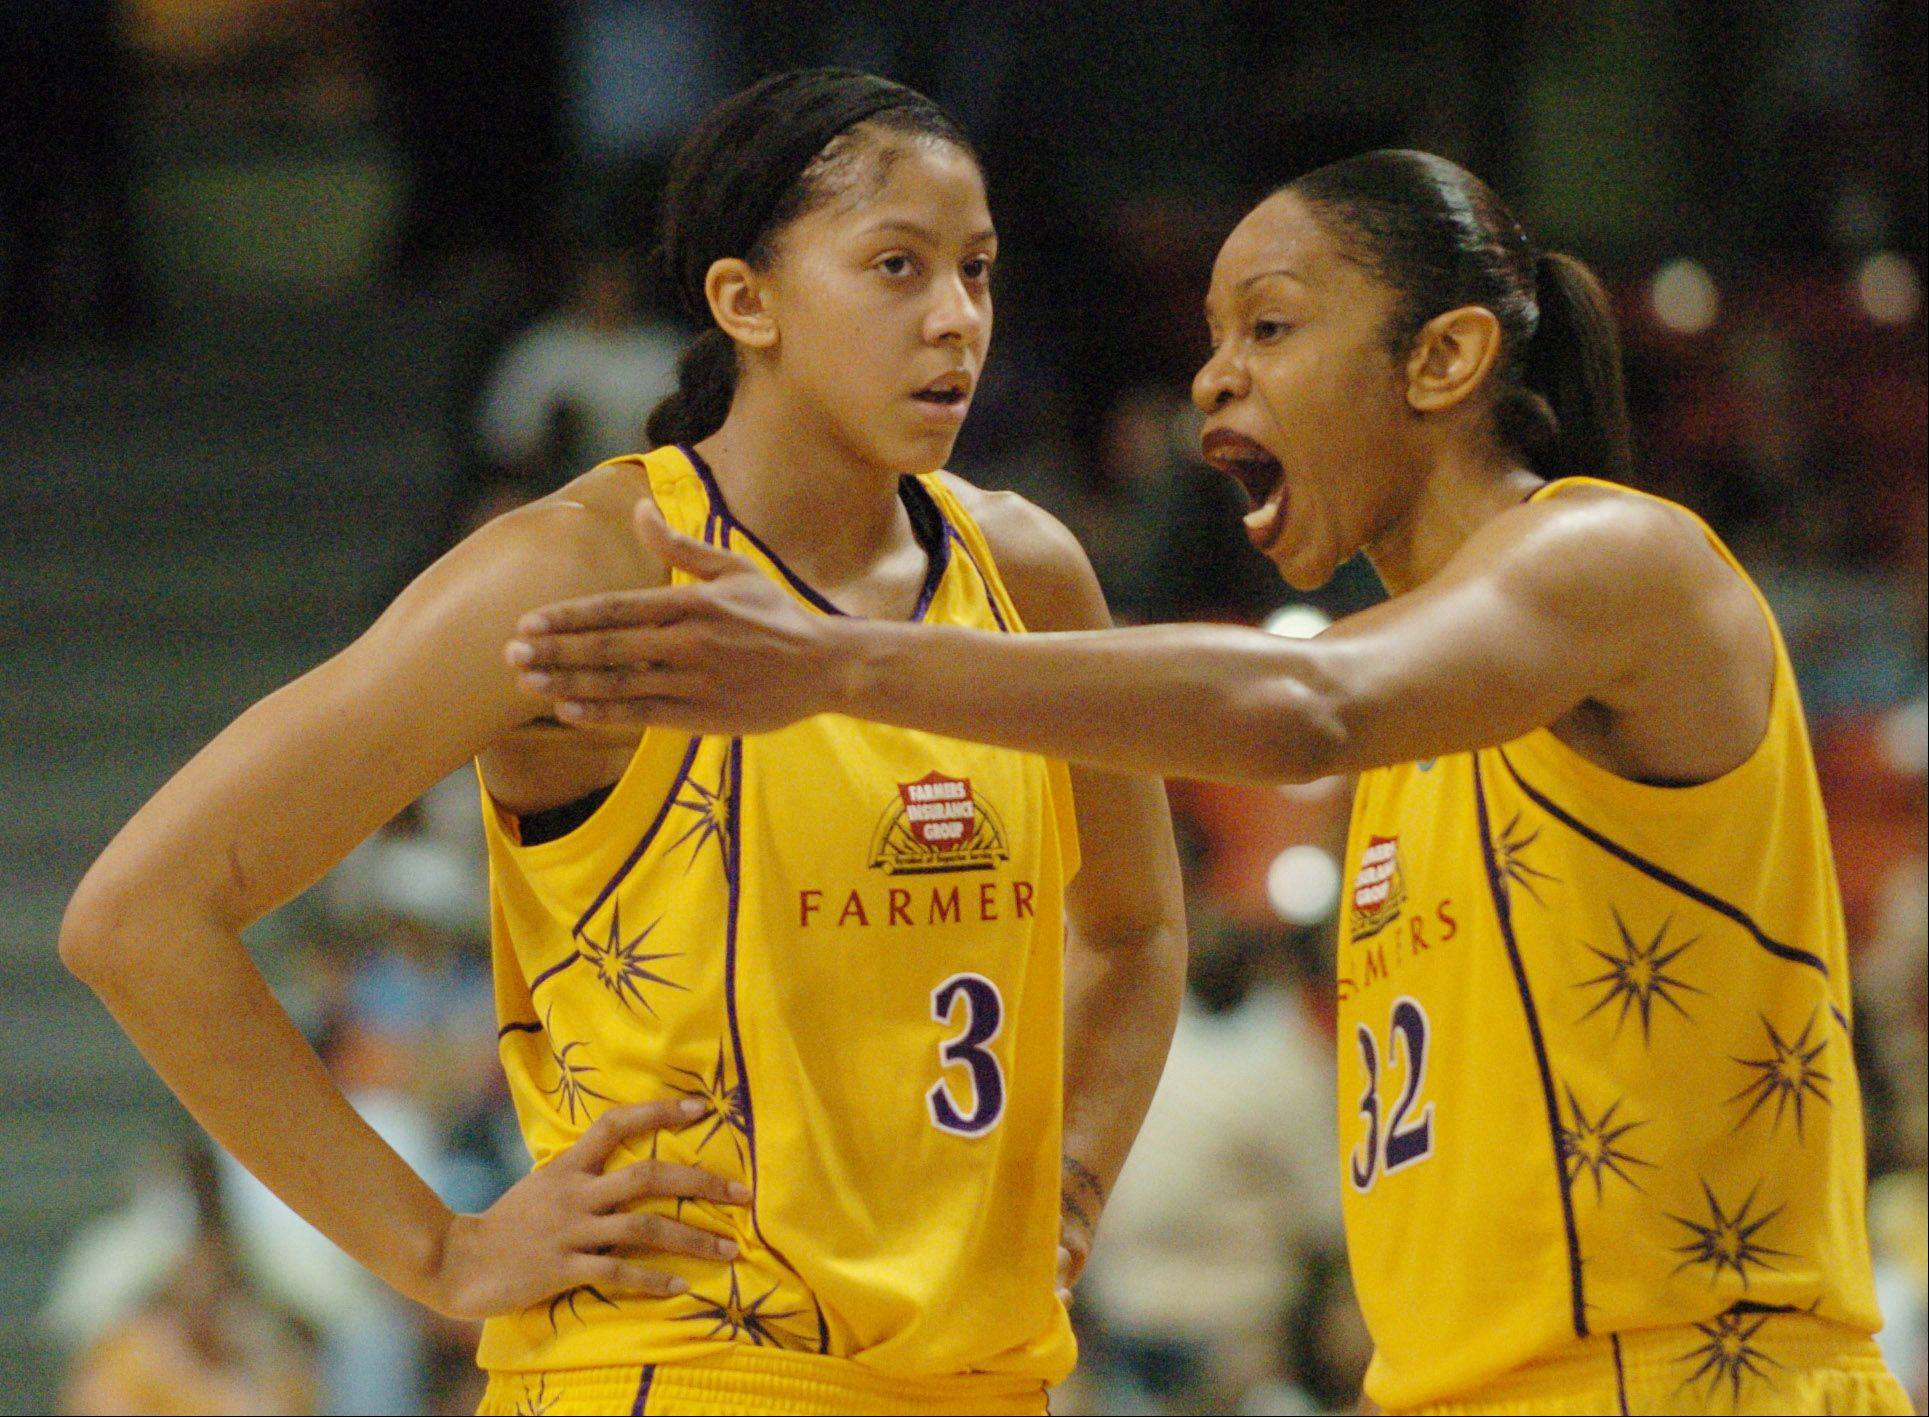 JOE LEWNARD/jlewnard@dailyherald.com Candace Parker of the Los Angeles Sparks takes instruction from teammate Tina Thompson when the two were teammates. Thompson holds WNBA records for games played, minutes played and total points scored.